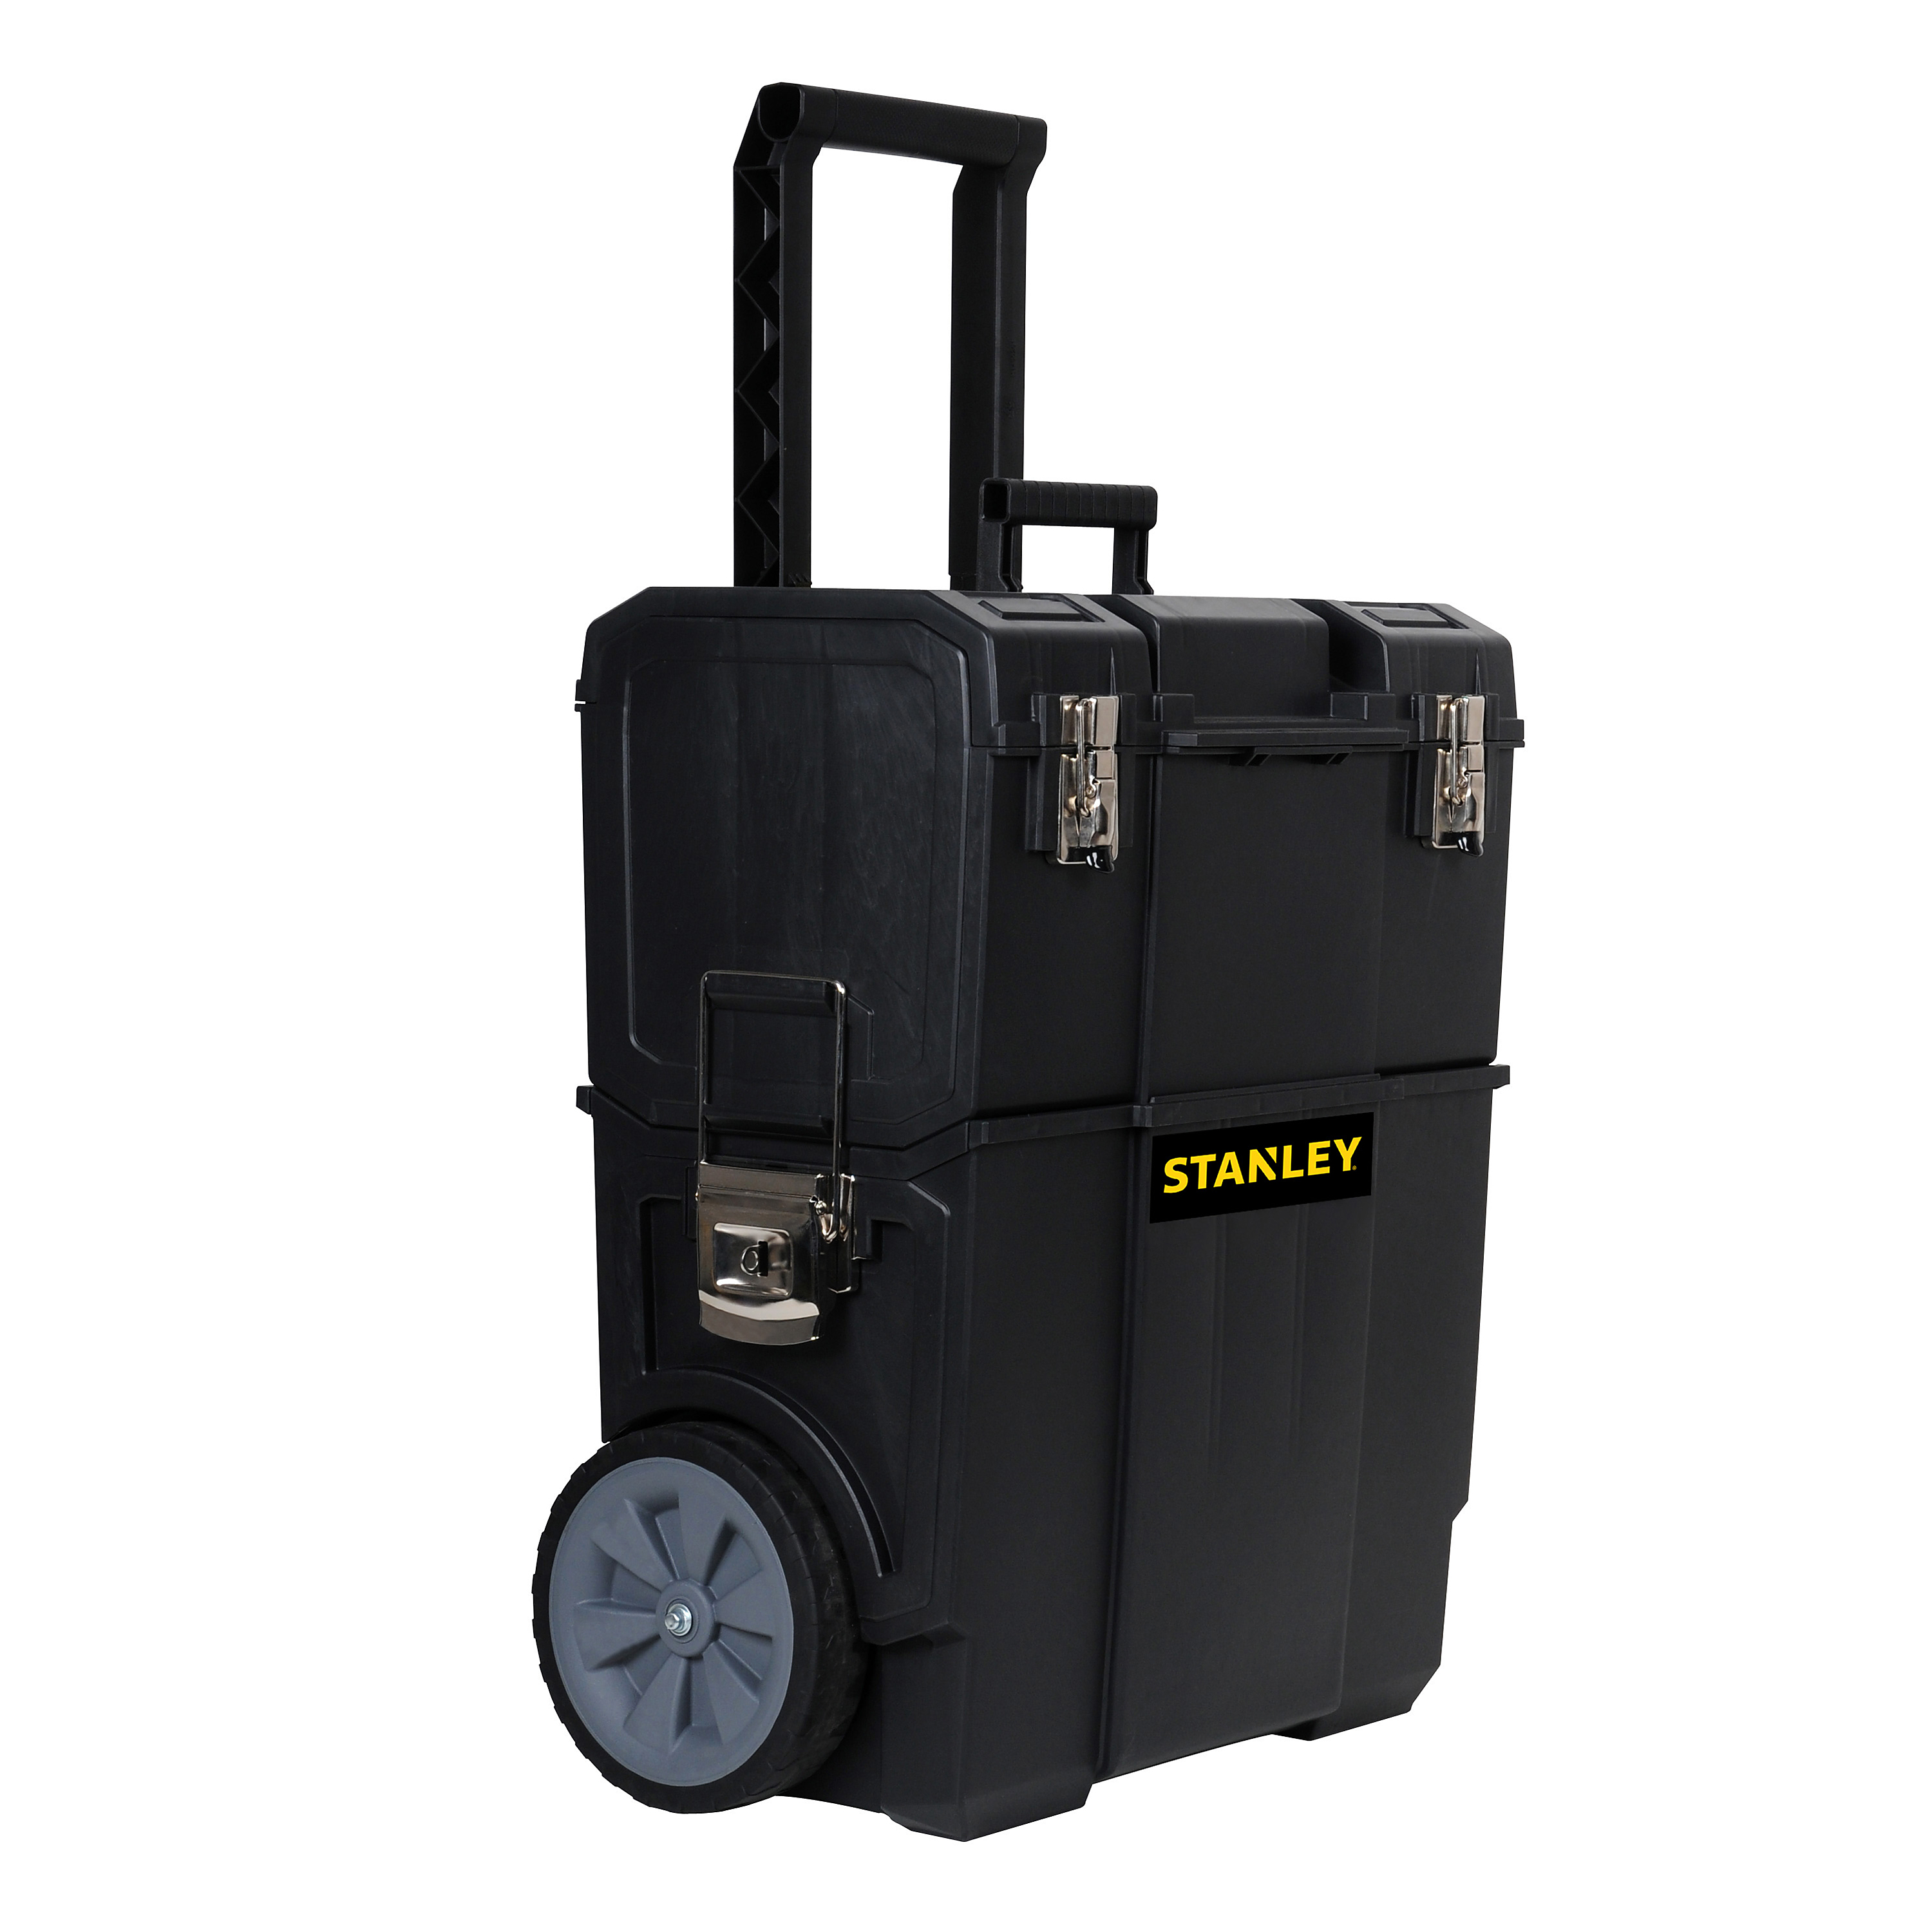 STANLEY STST18612W 2-IN-1 Mobile Work Center Plus Flat Top